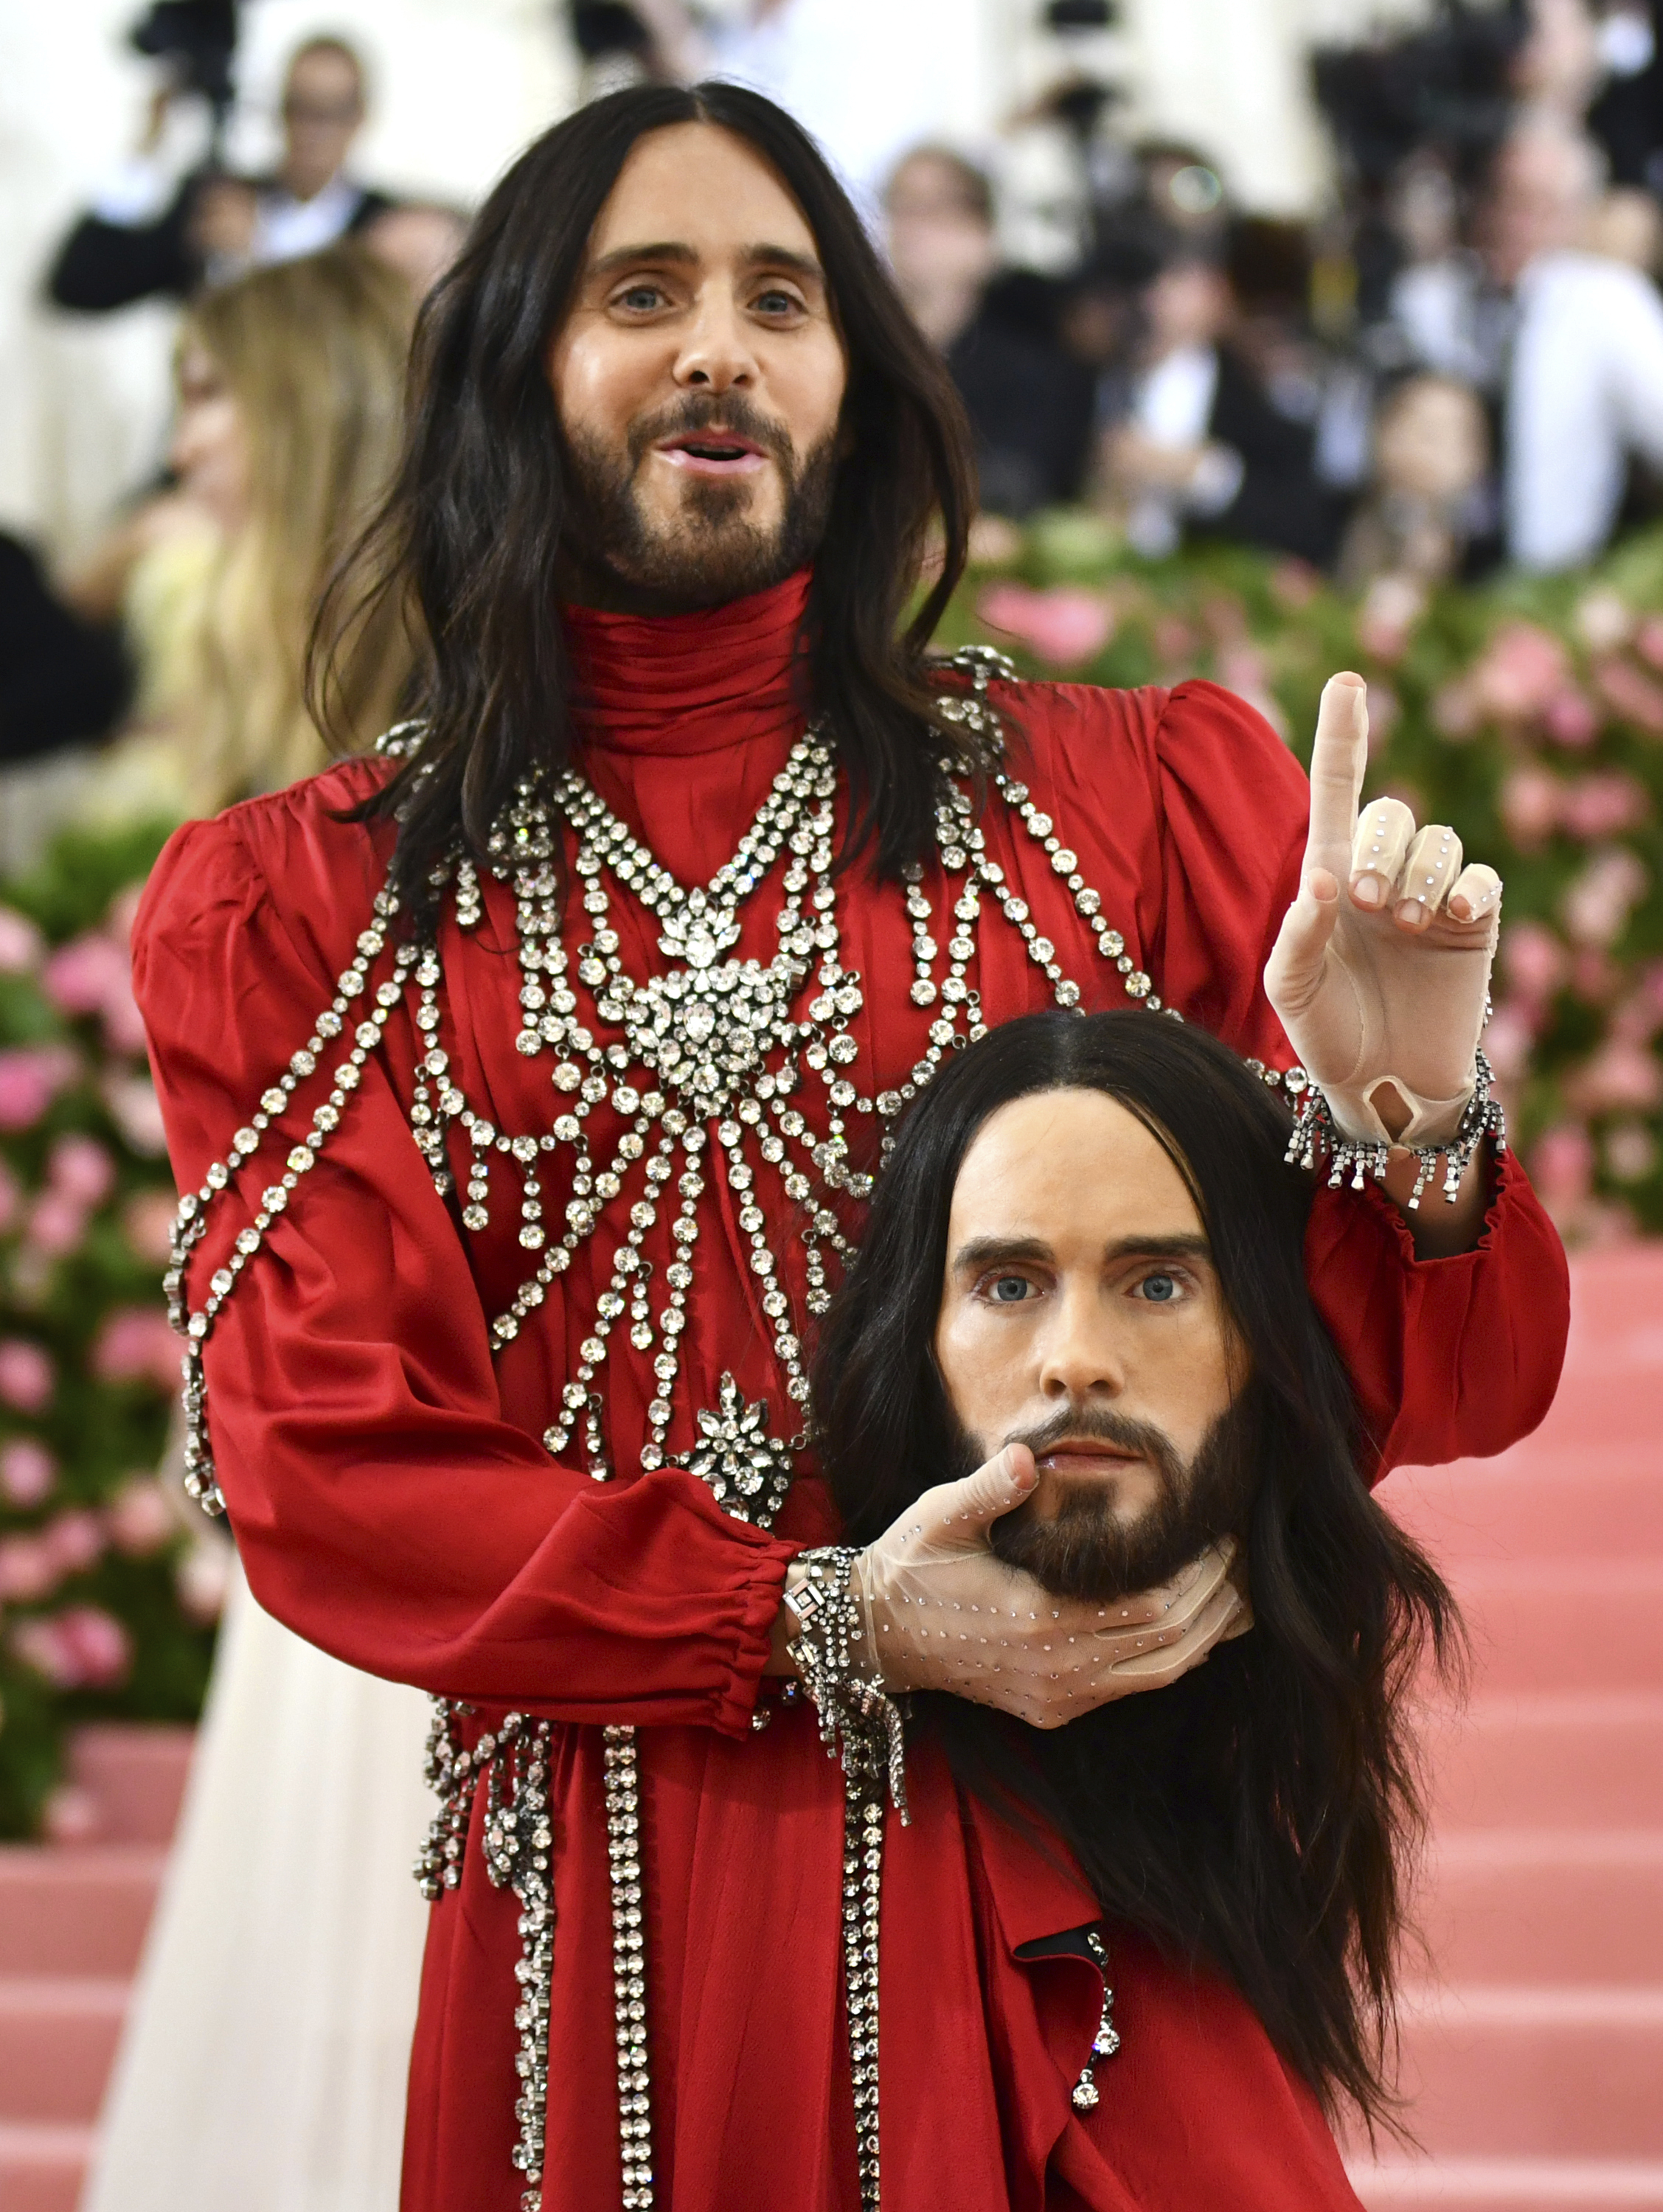 Jared Leto carried a prosthetic head down the red carpet. Credit: PA